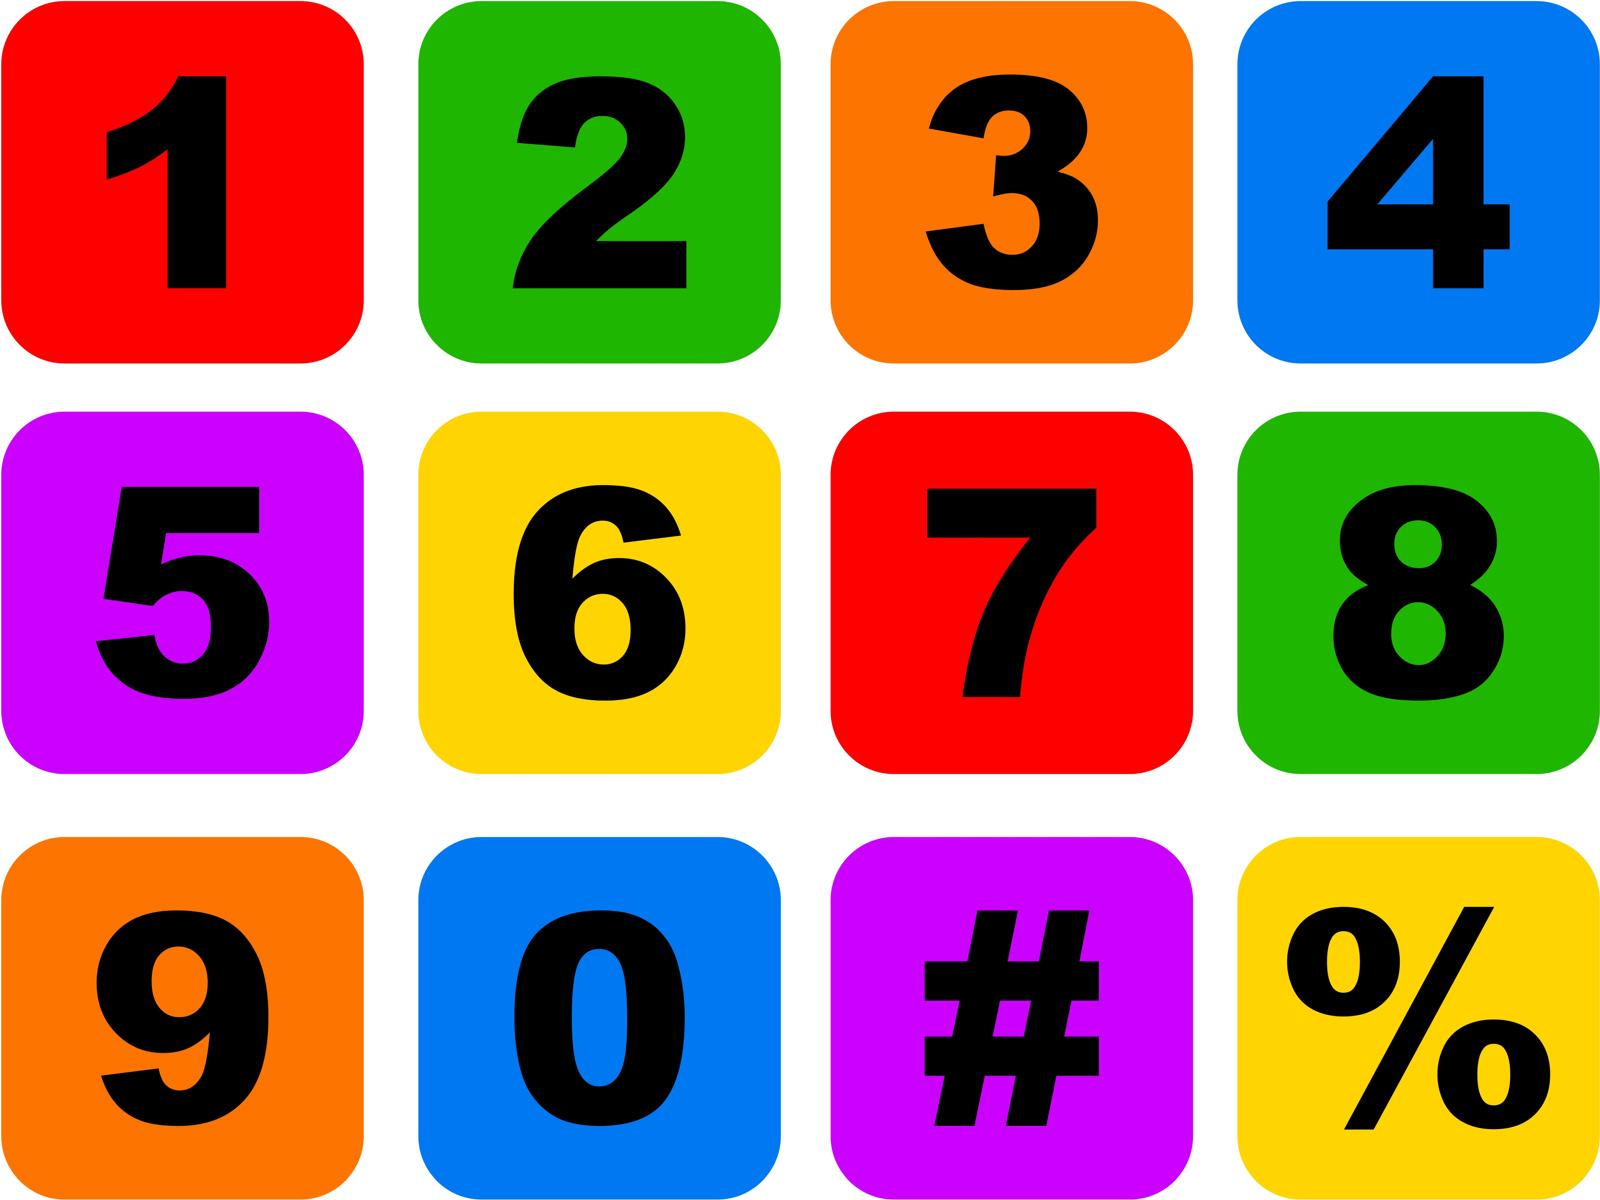 2nd smallest number puzzle puzzle fry